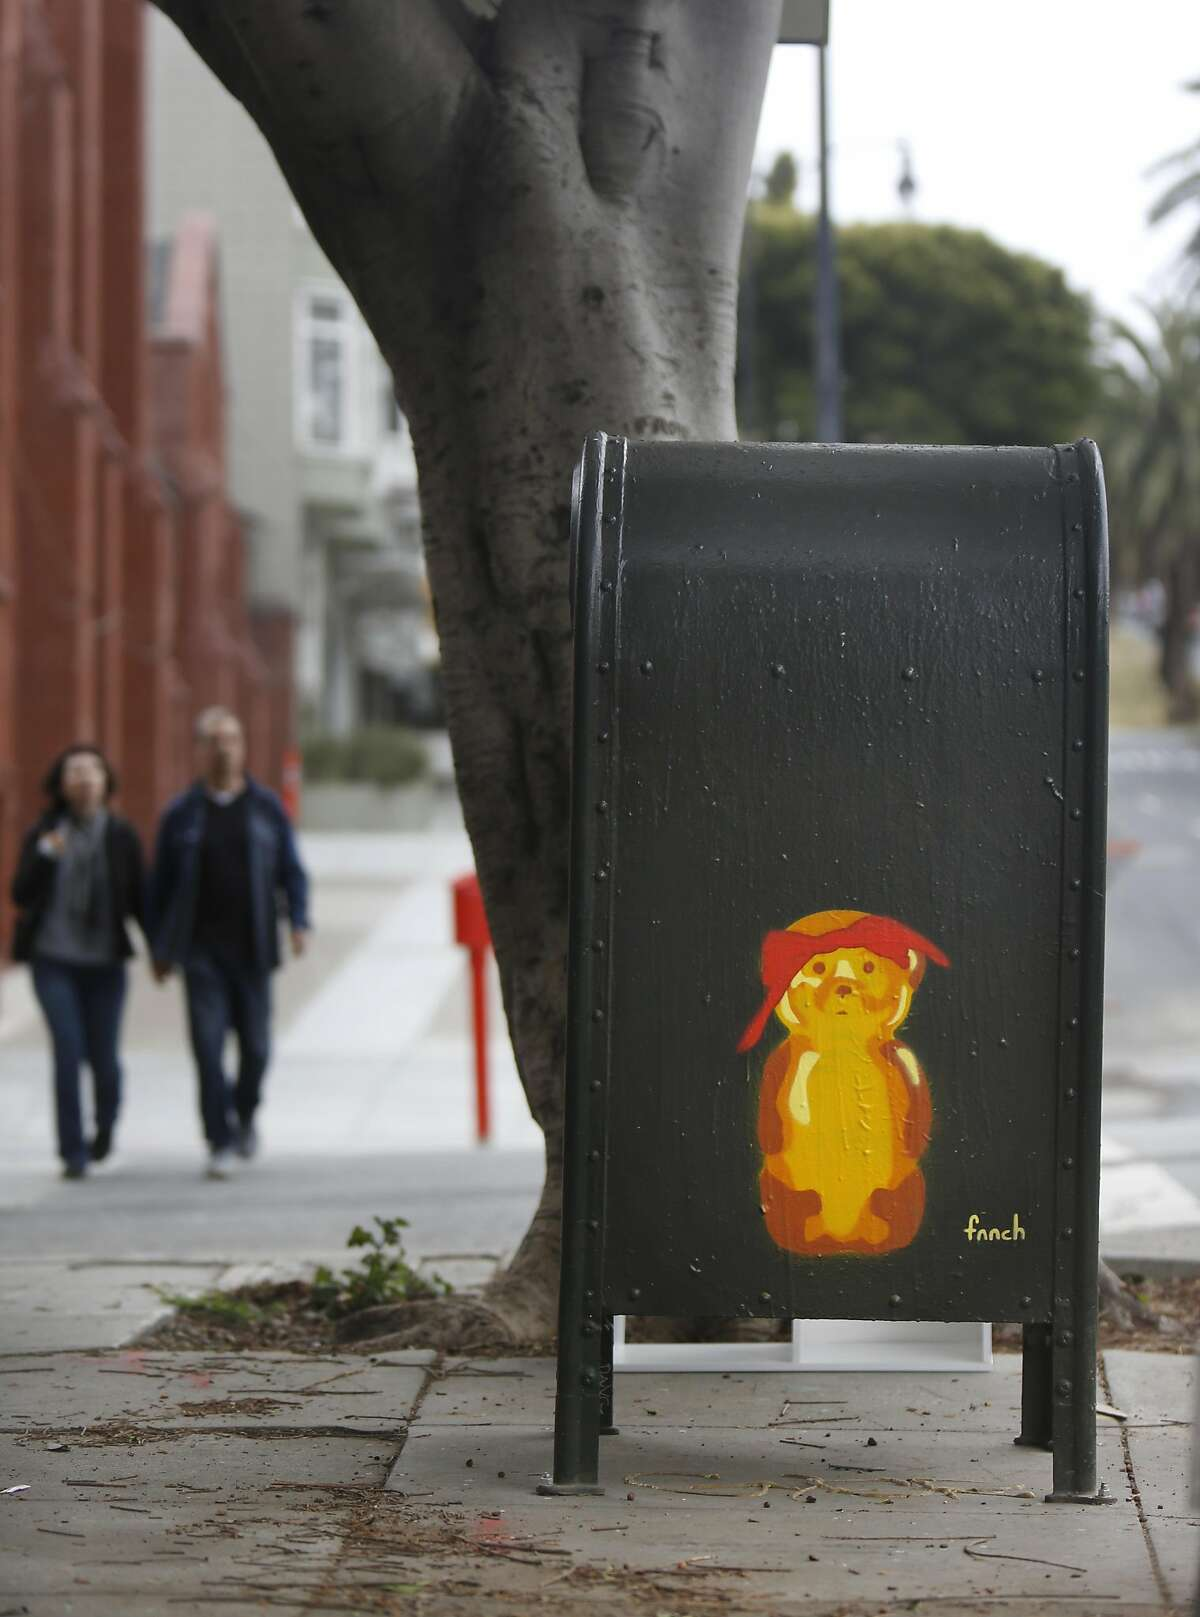 A honey bear on a mailbox by street artist Fnnch is seen on the corner of 19th and Dolores Streets on Wednesday, May 27, 2015 in San Francisco, Calif.